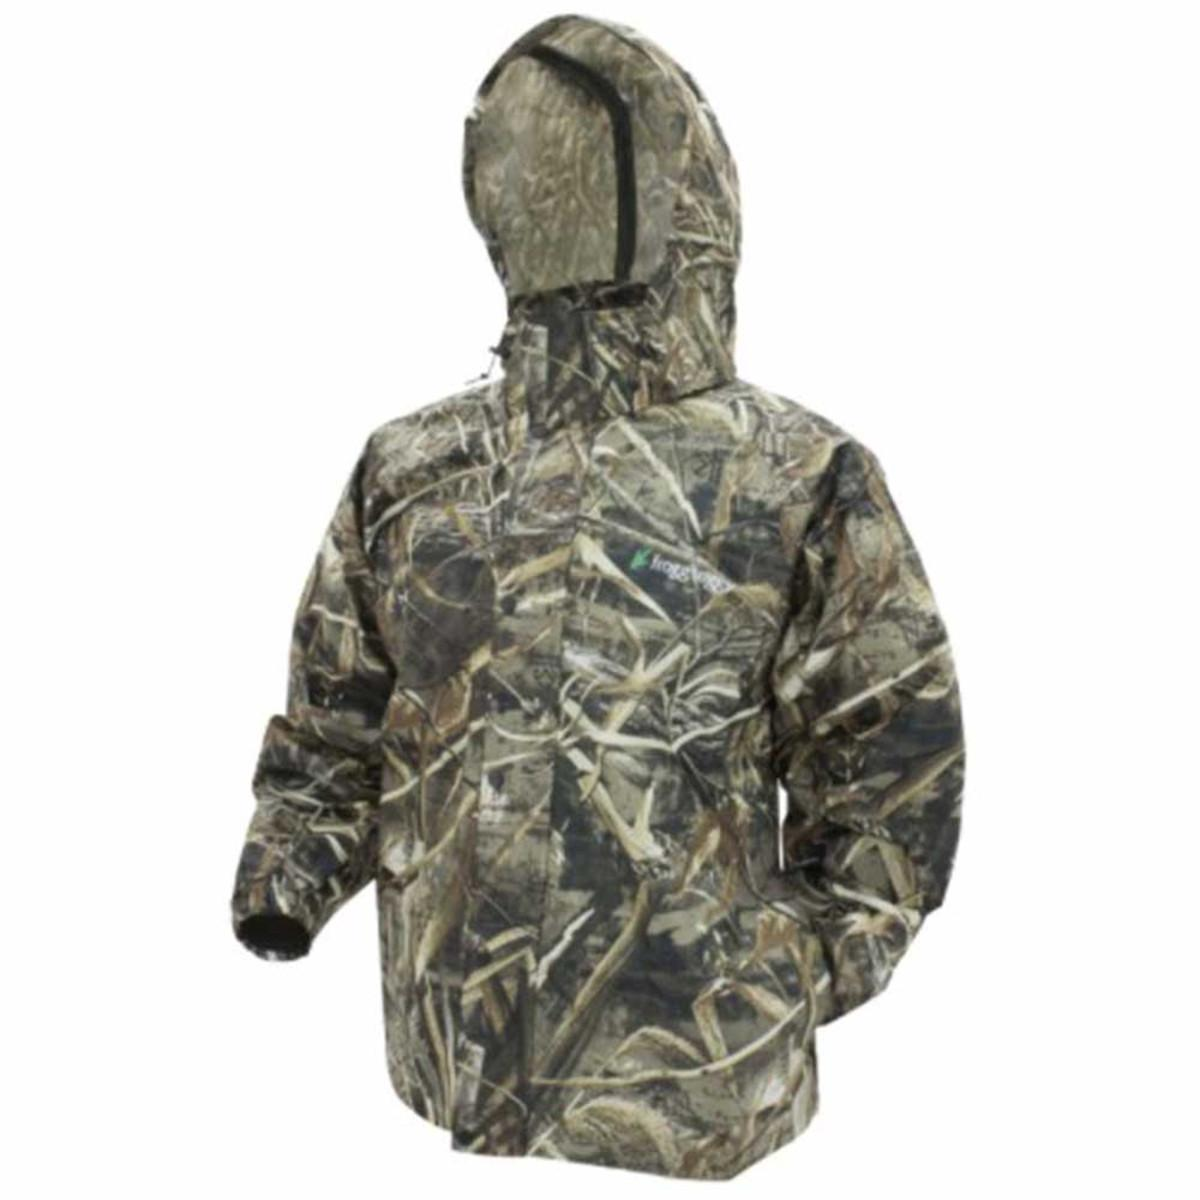 Frogg Toggs Pro Action Breathable Rain Jacket, Realtree Max 5